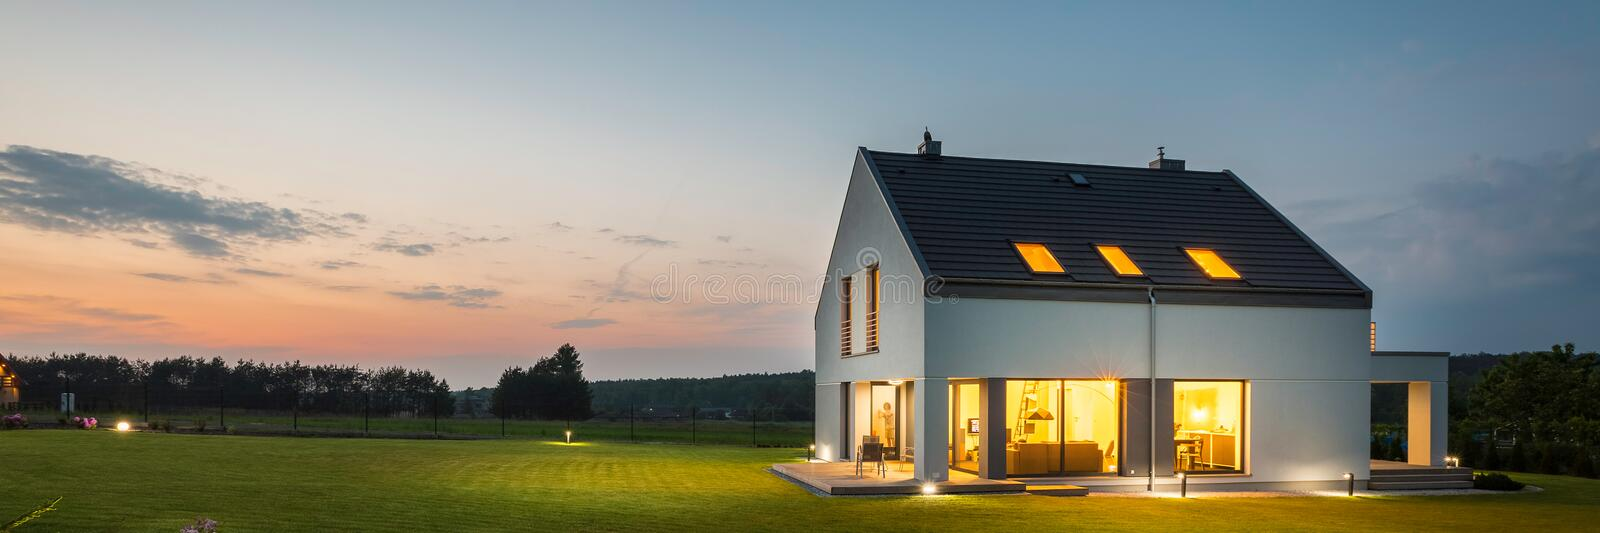 Modern house with garden at night royalty free stock photos